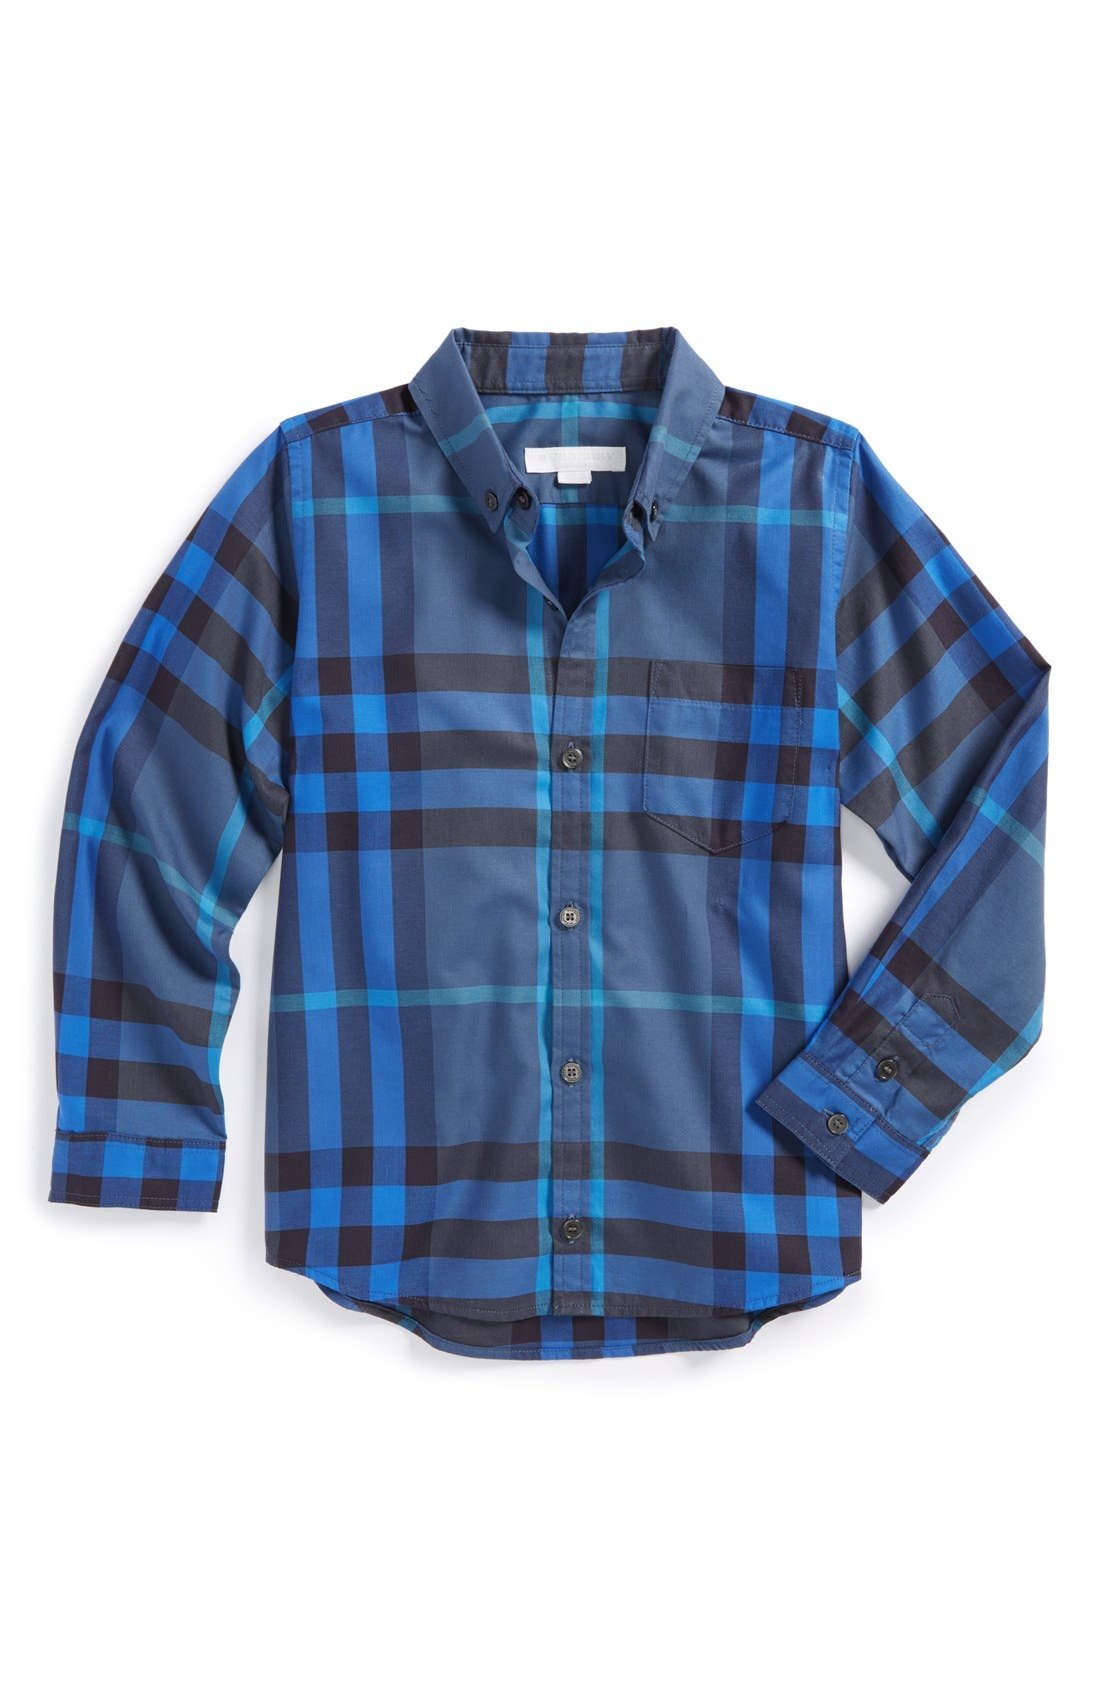 Alternate Image 1 Selected - Burberry 'Mini Fred' Check Print Woven Shirt (Little Boys & Big Boys)